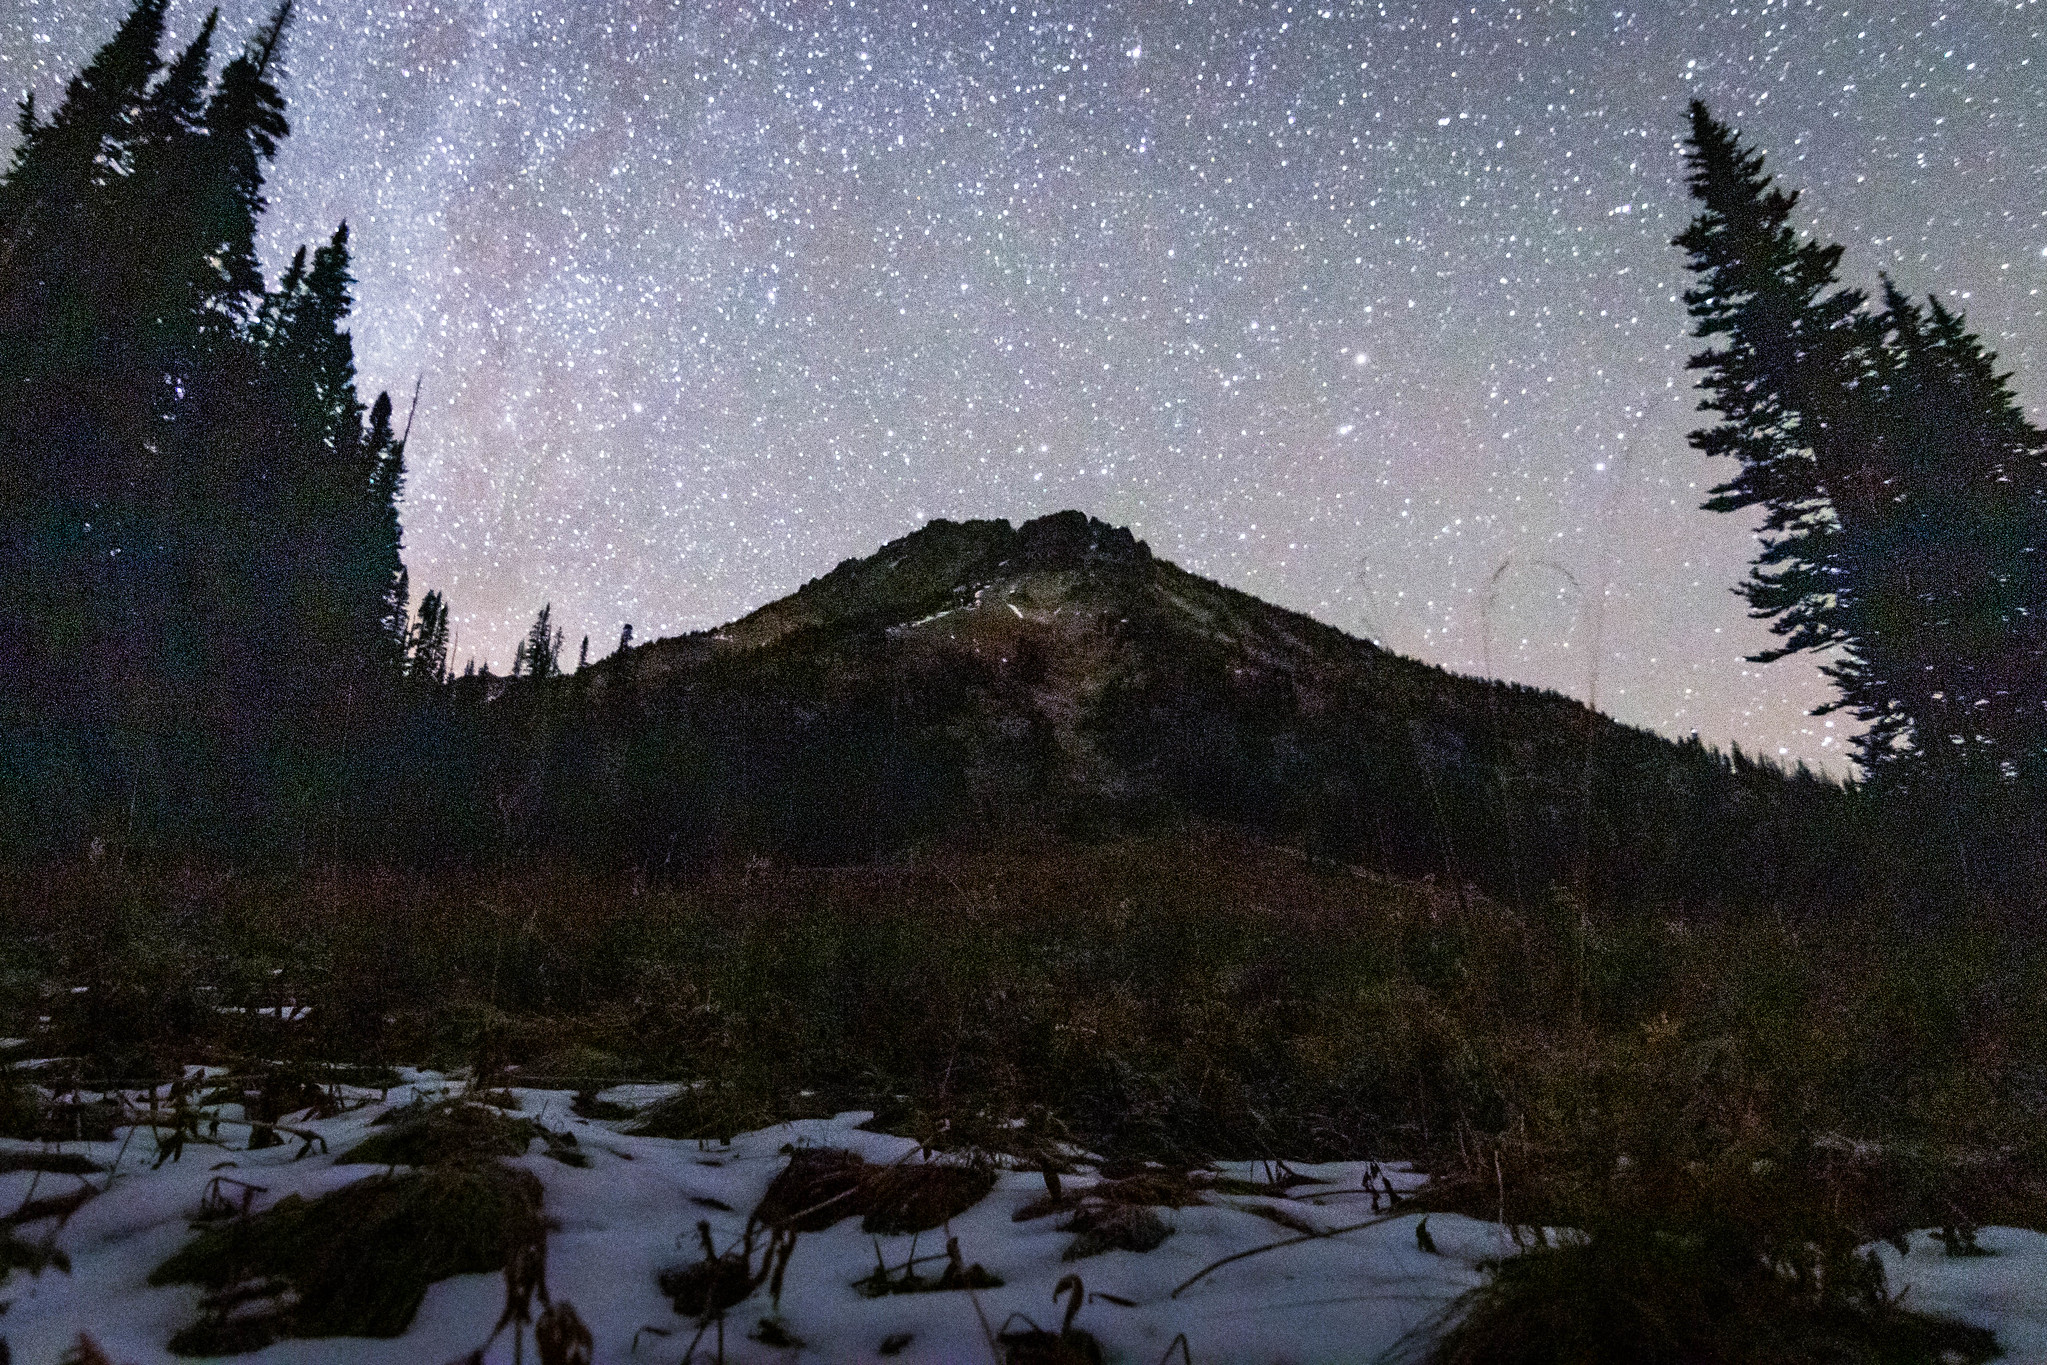 Wy'East Mountain under the Milky Way